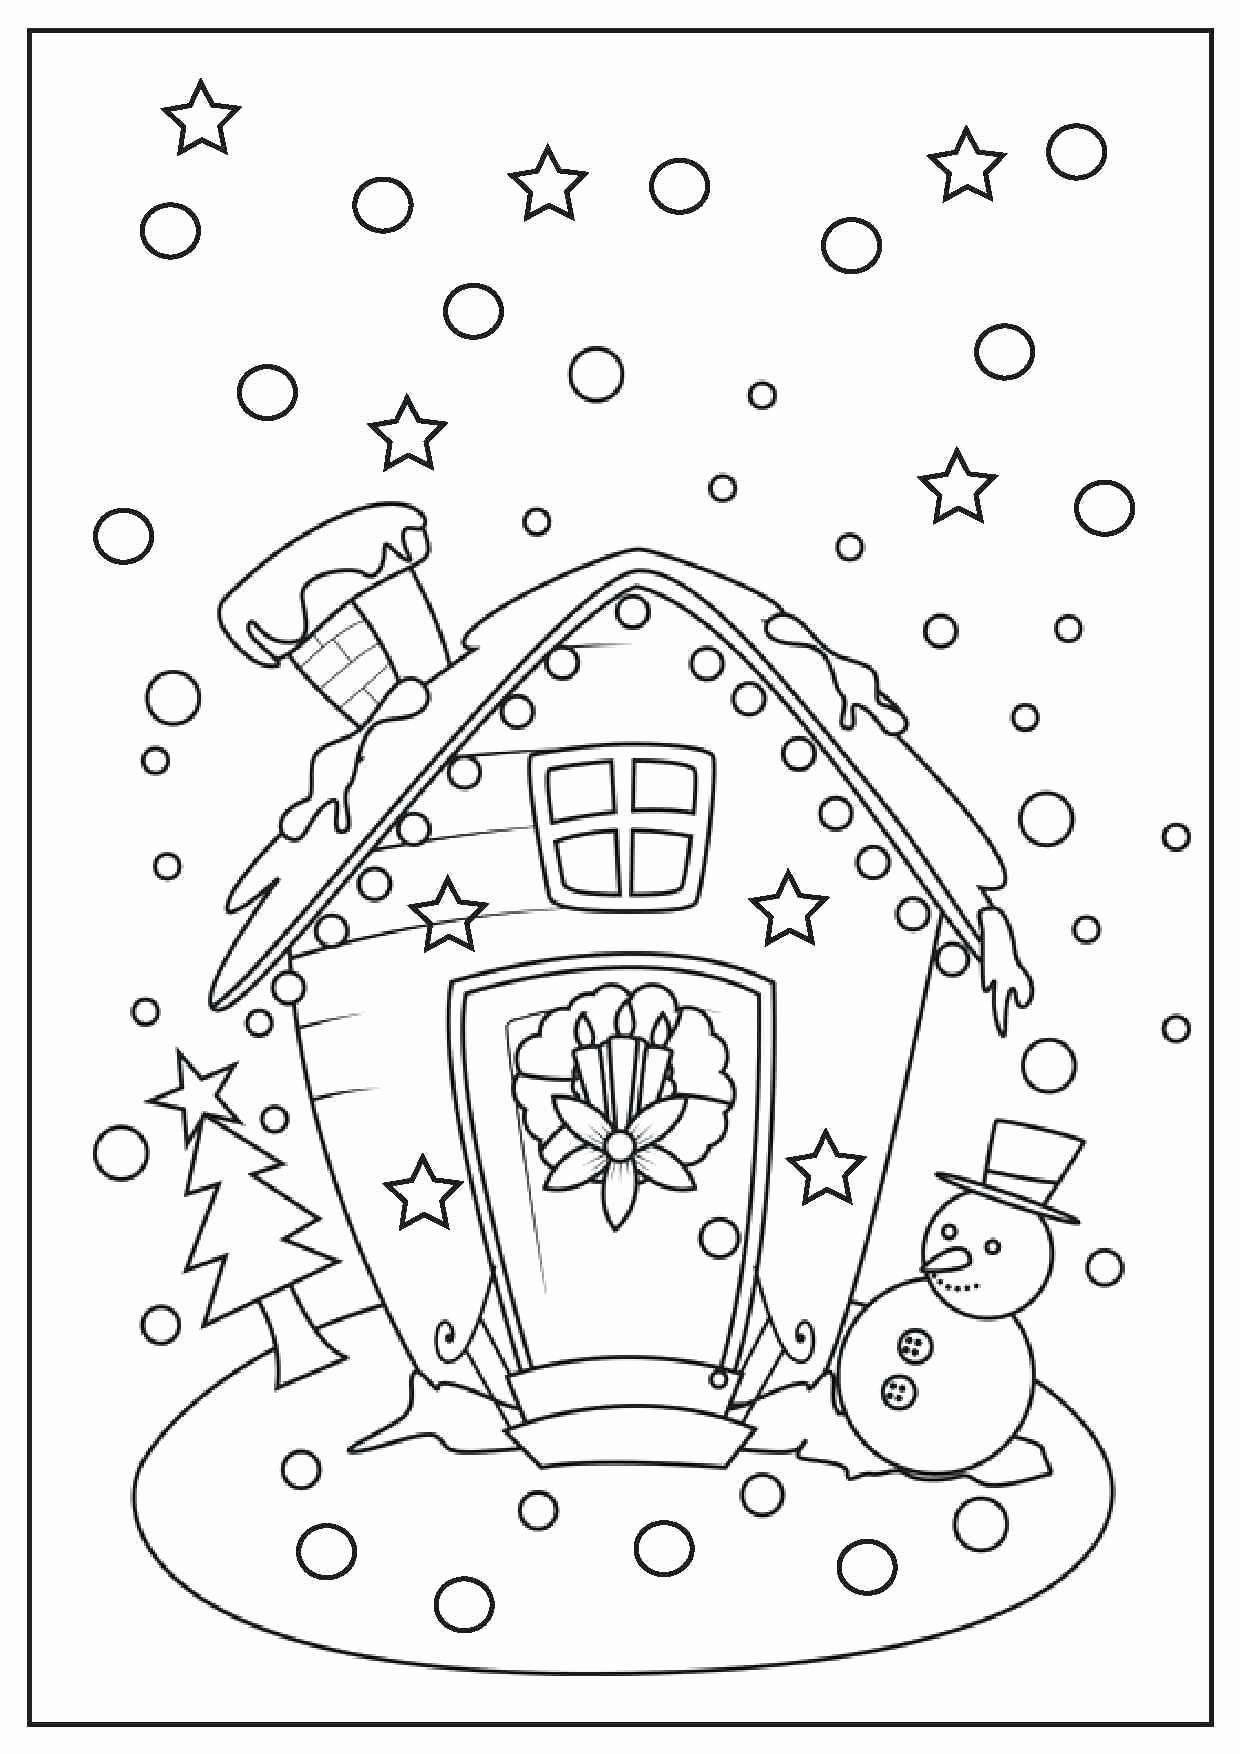 Christmas Coloring Book With Free Color Pages For Print Fun Unique